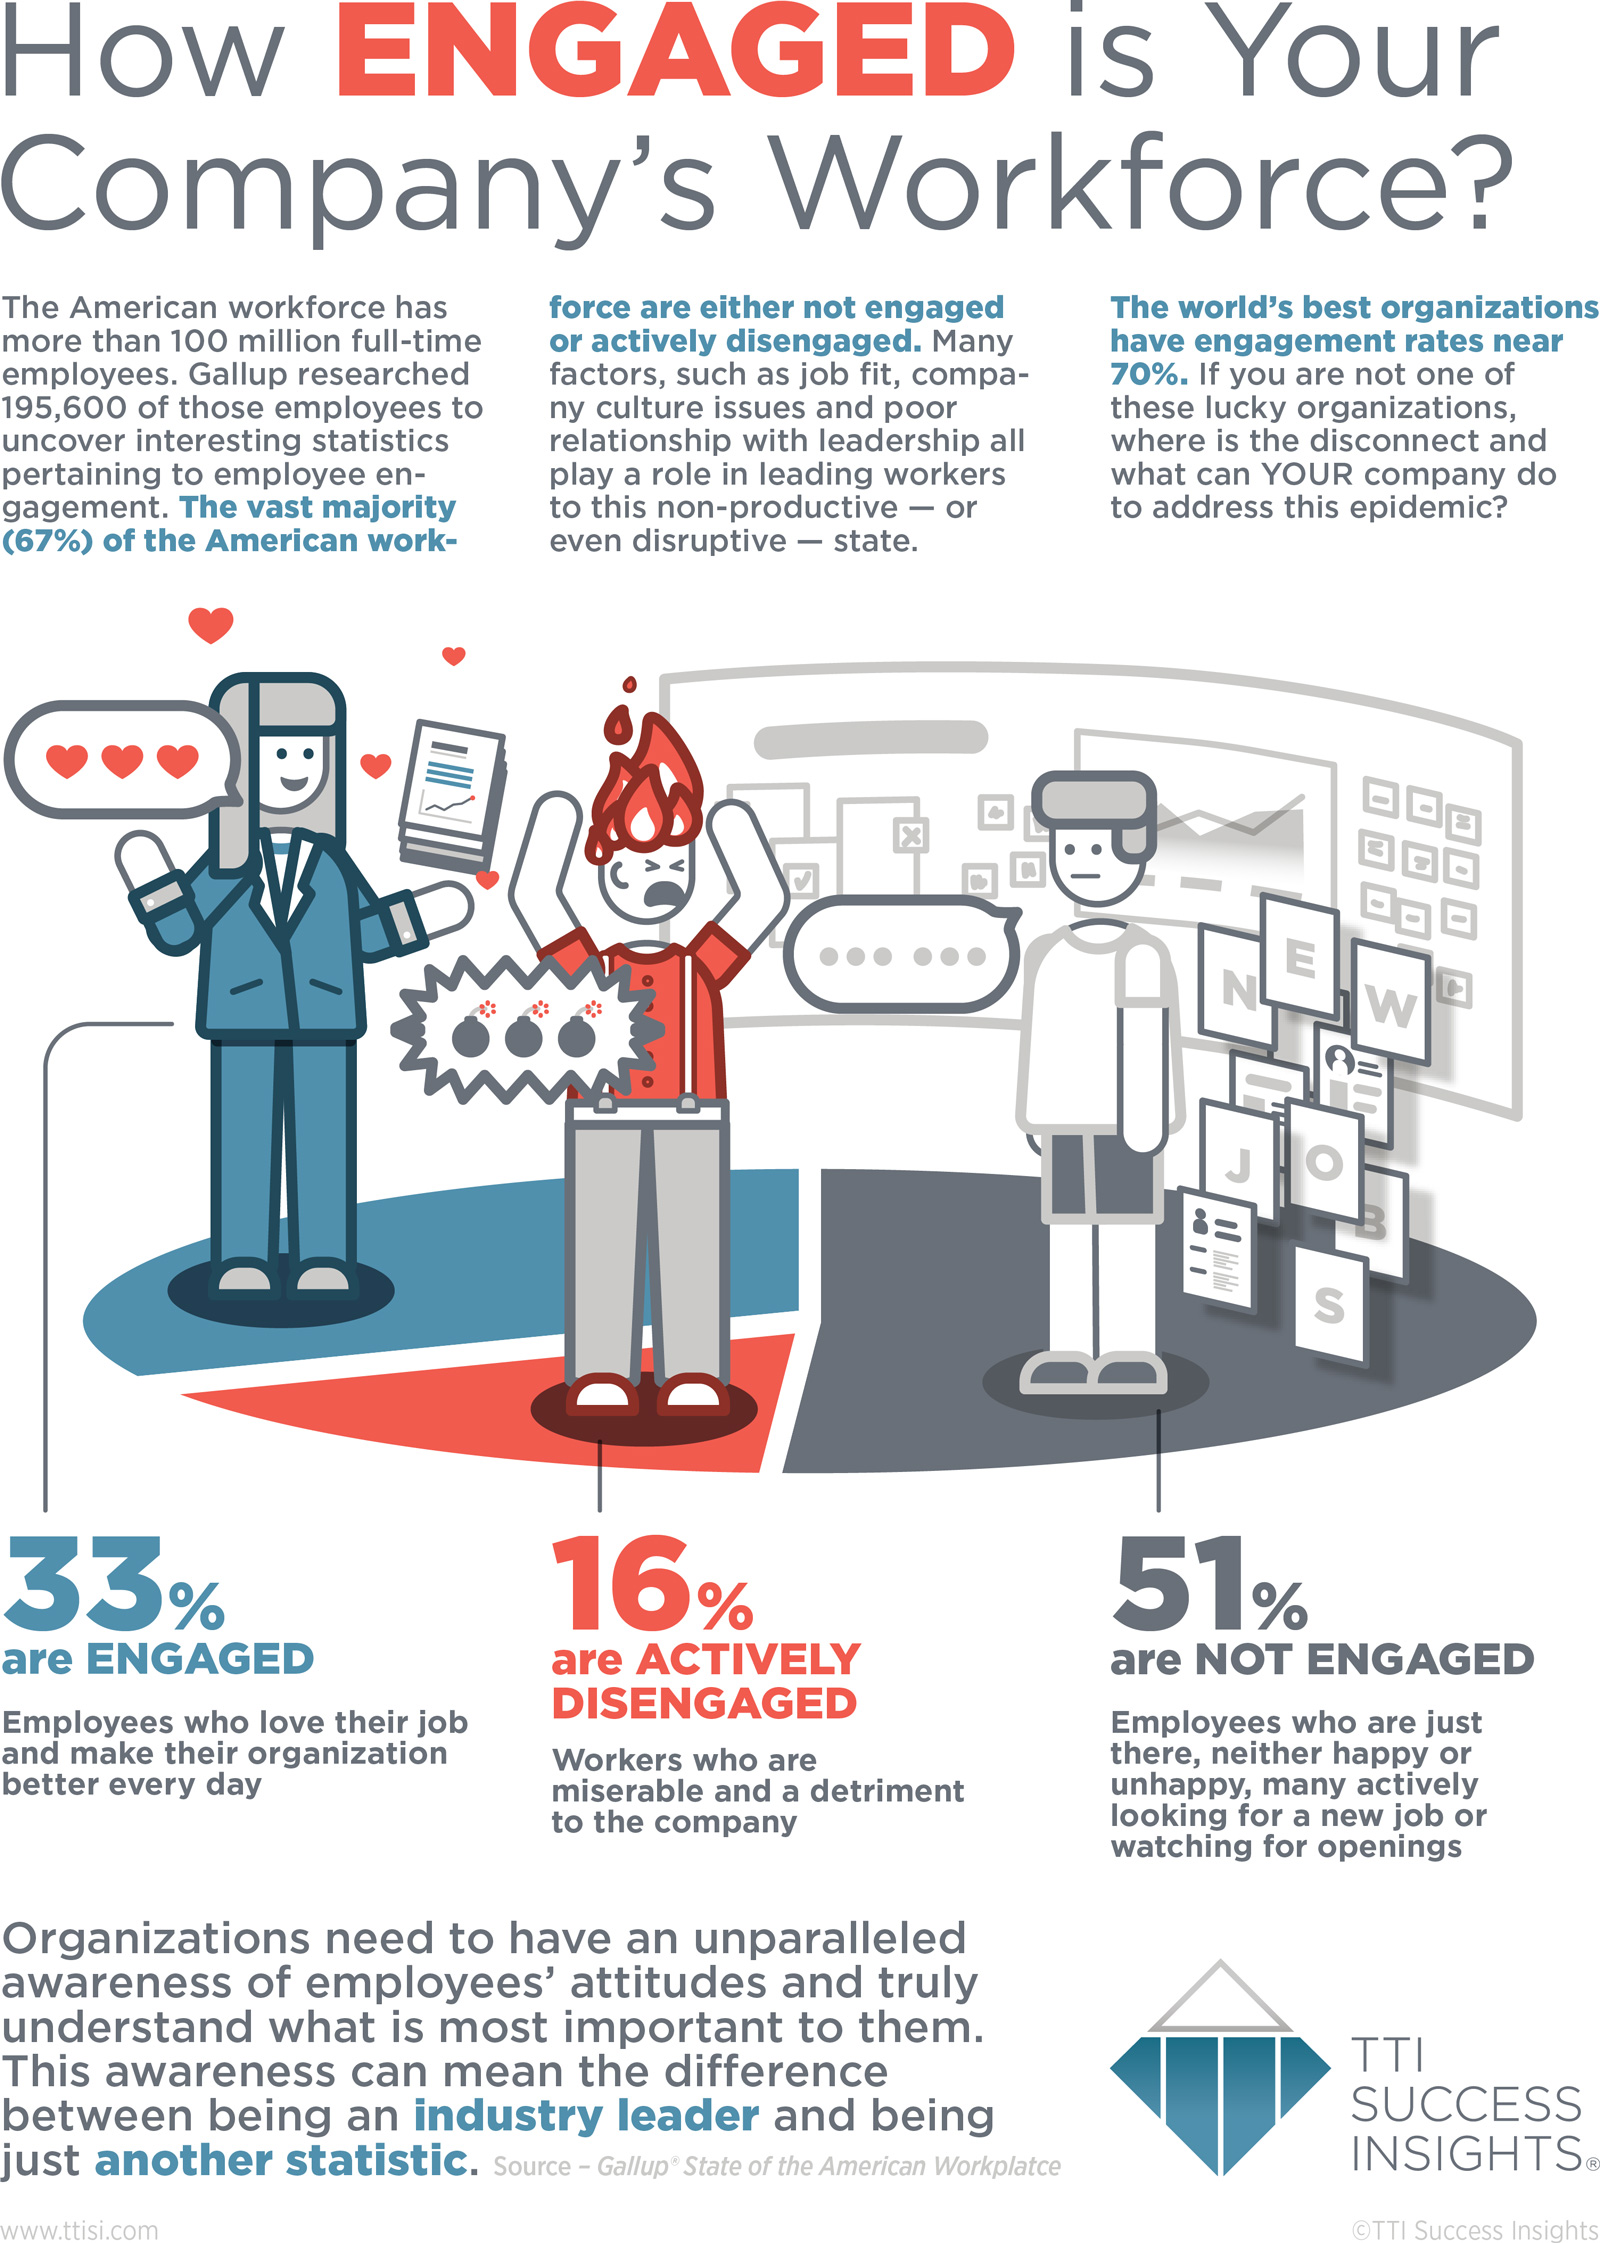 How-ENGAGED-is-Your-Company-Workforce-infographic